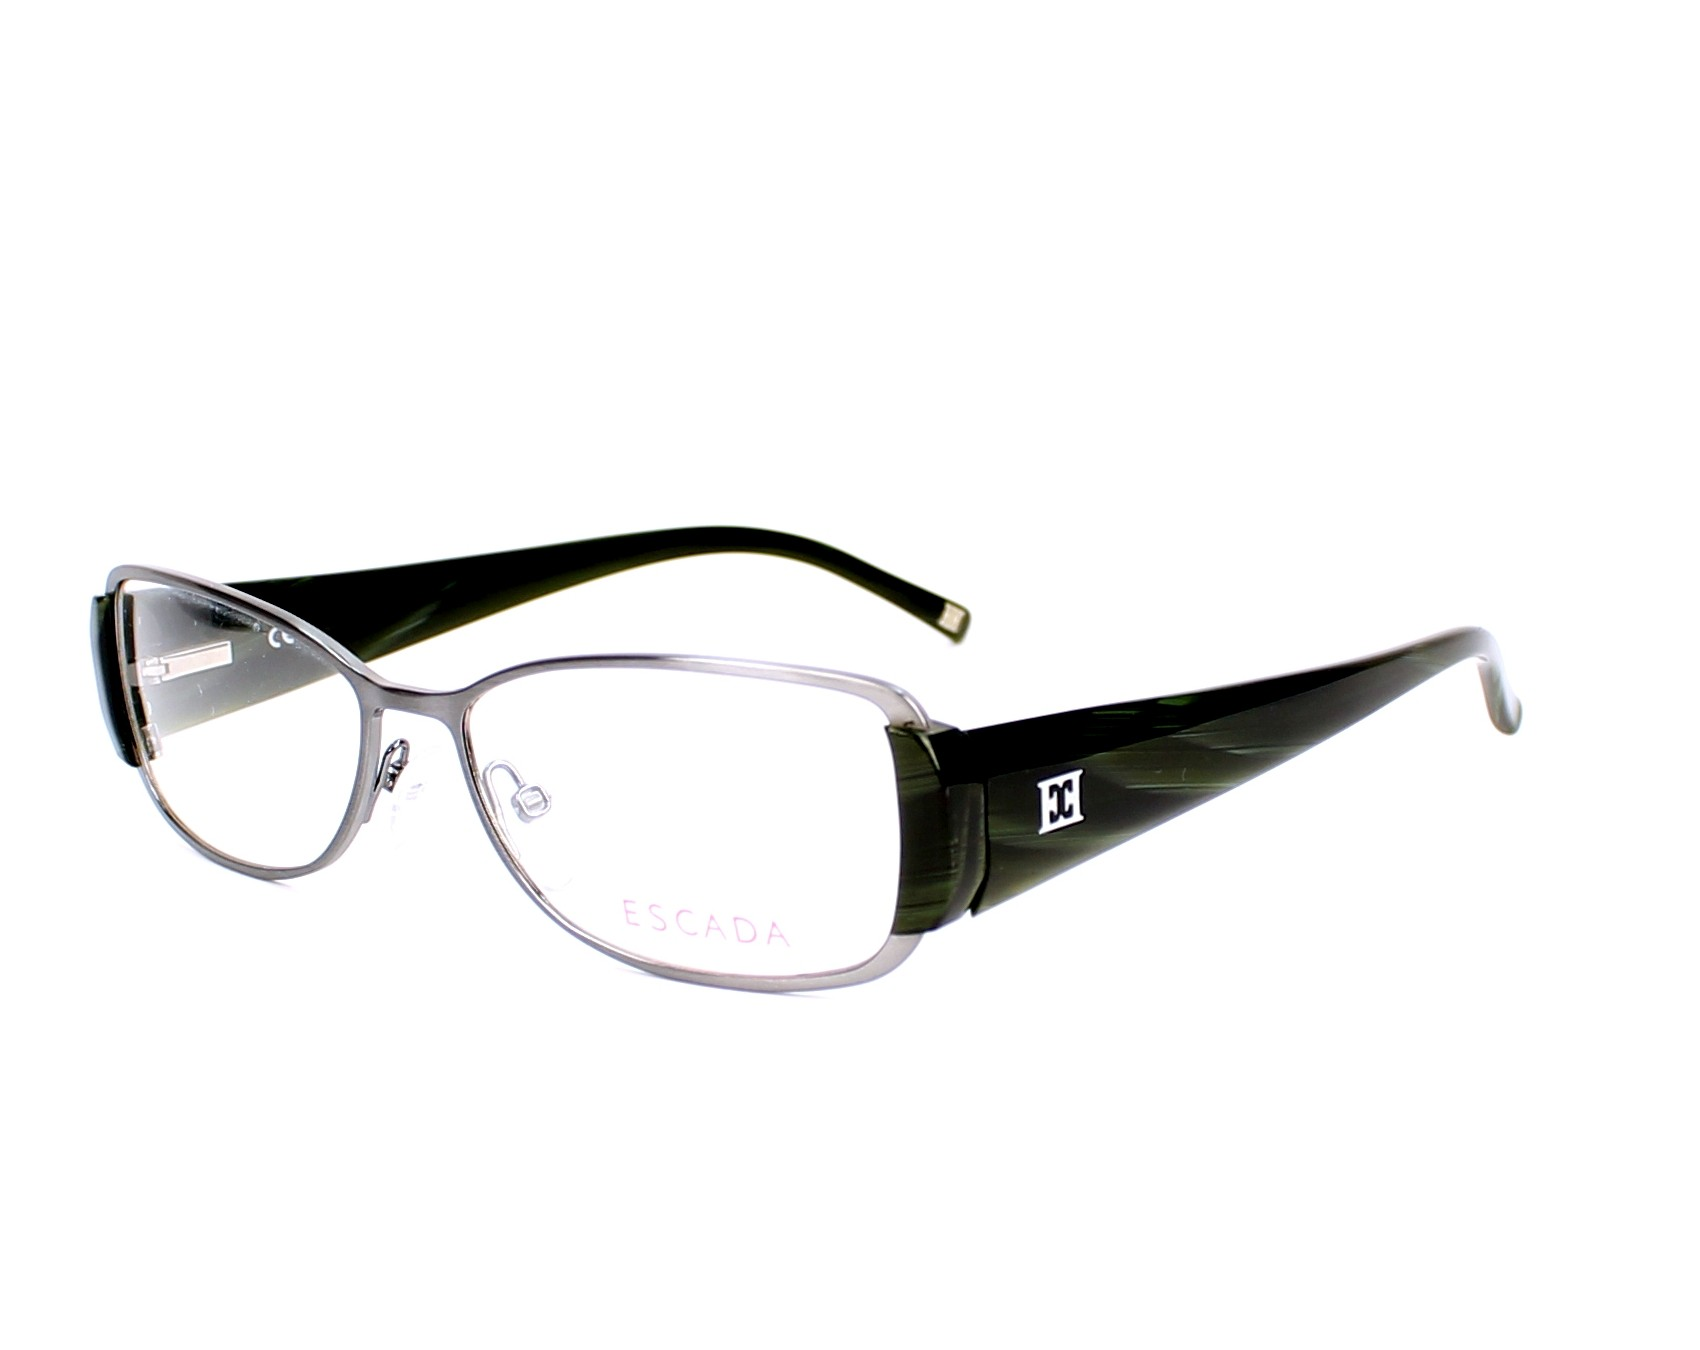 Order your Escada eyeglasses VES737 0Q36 52 today